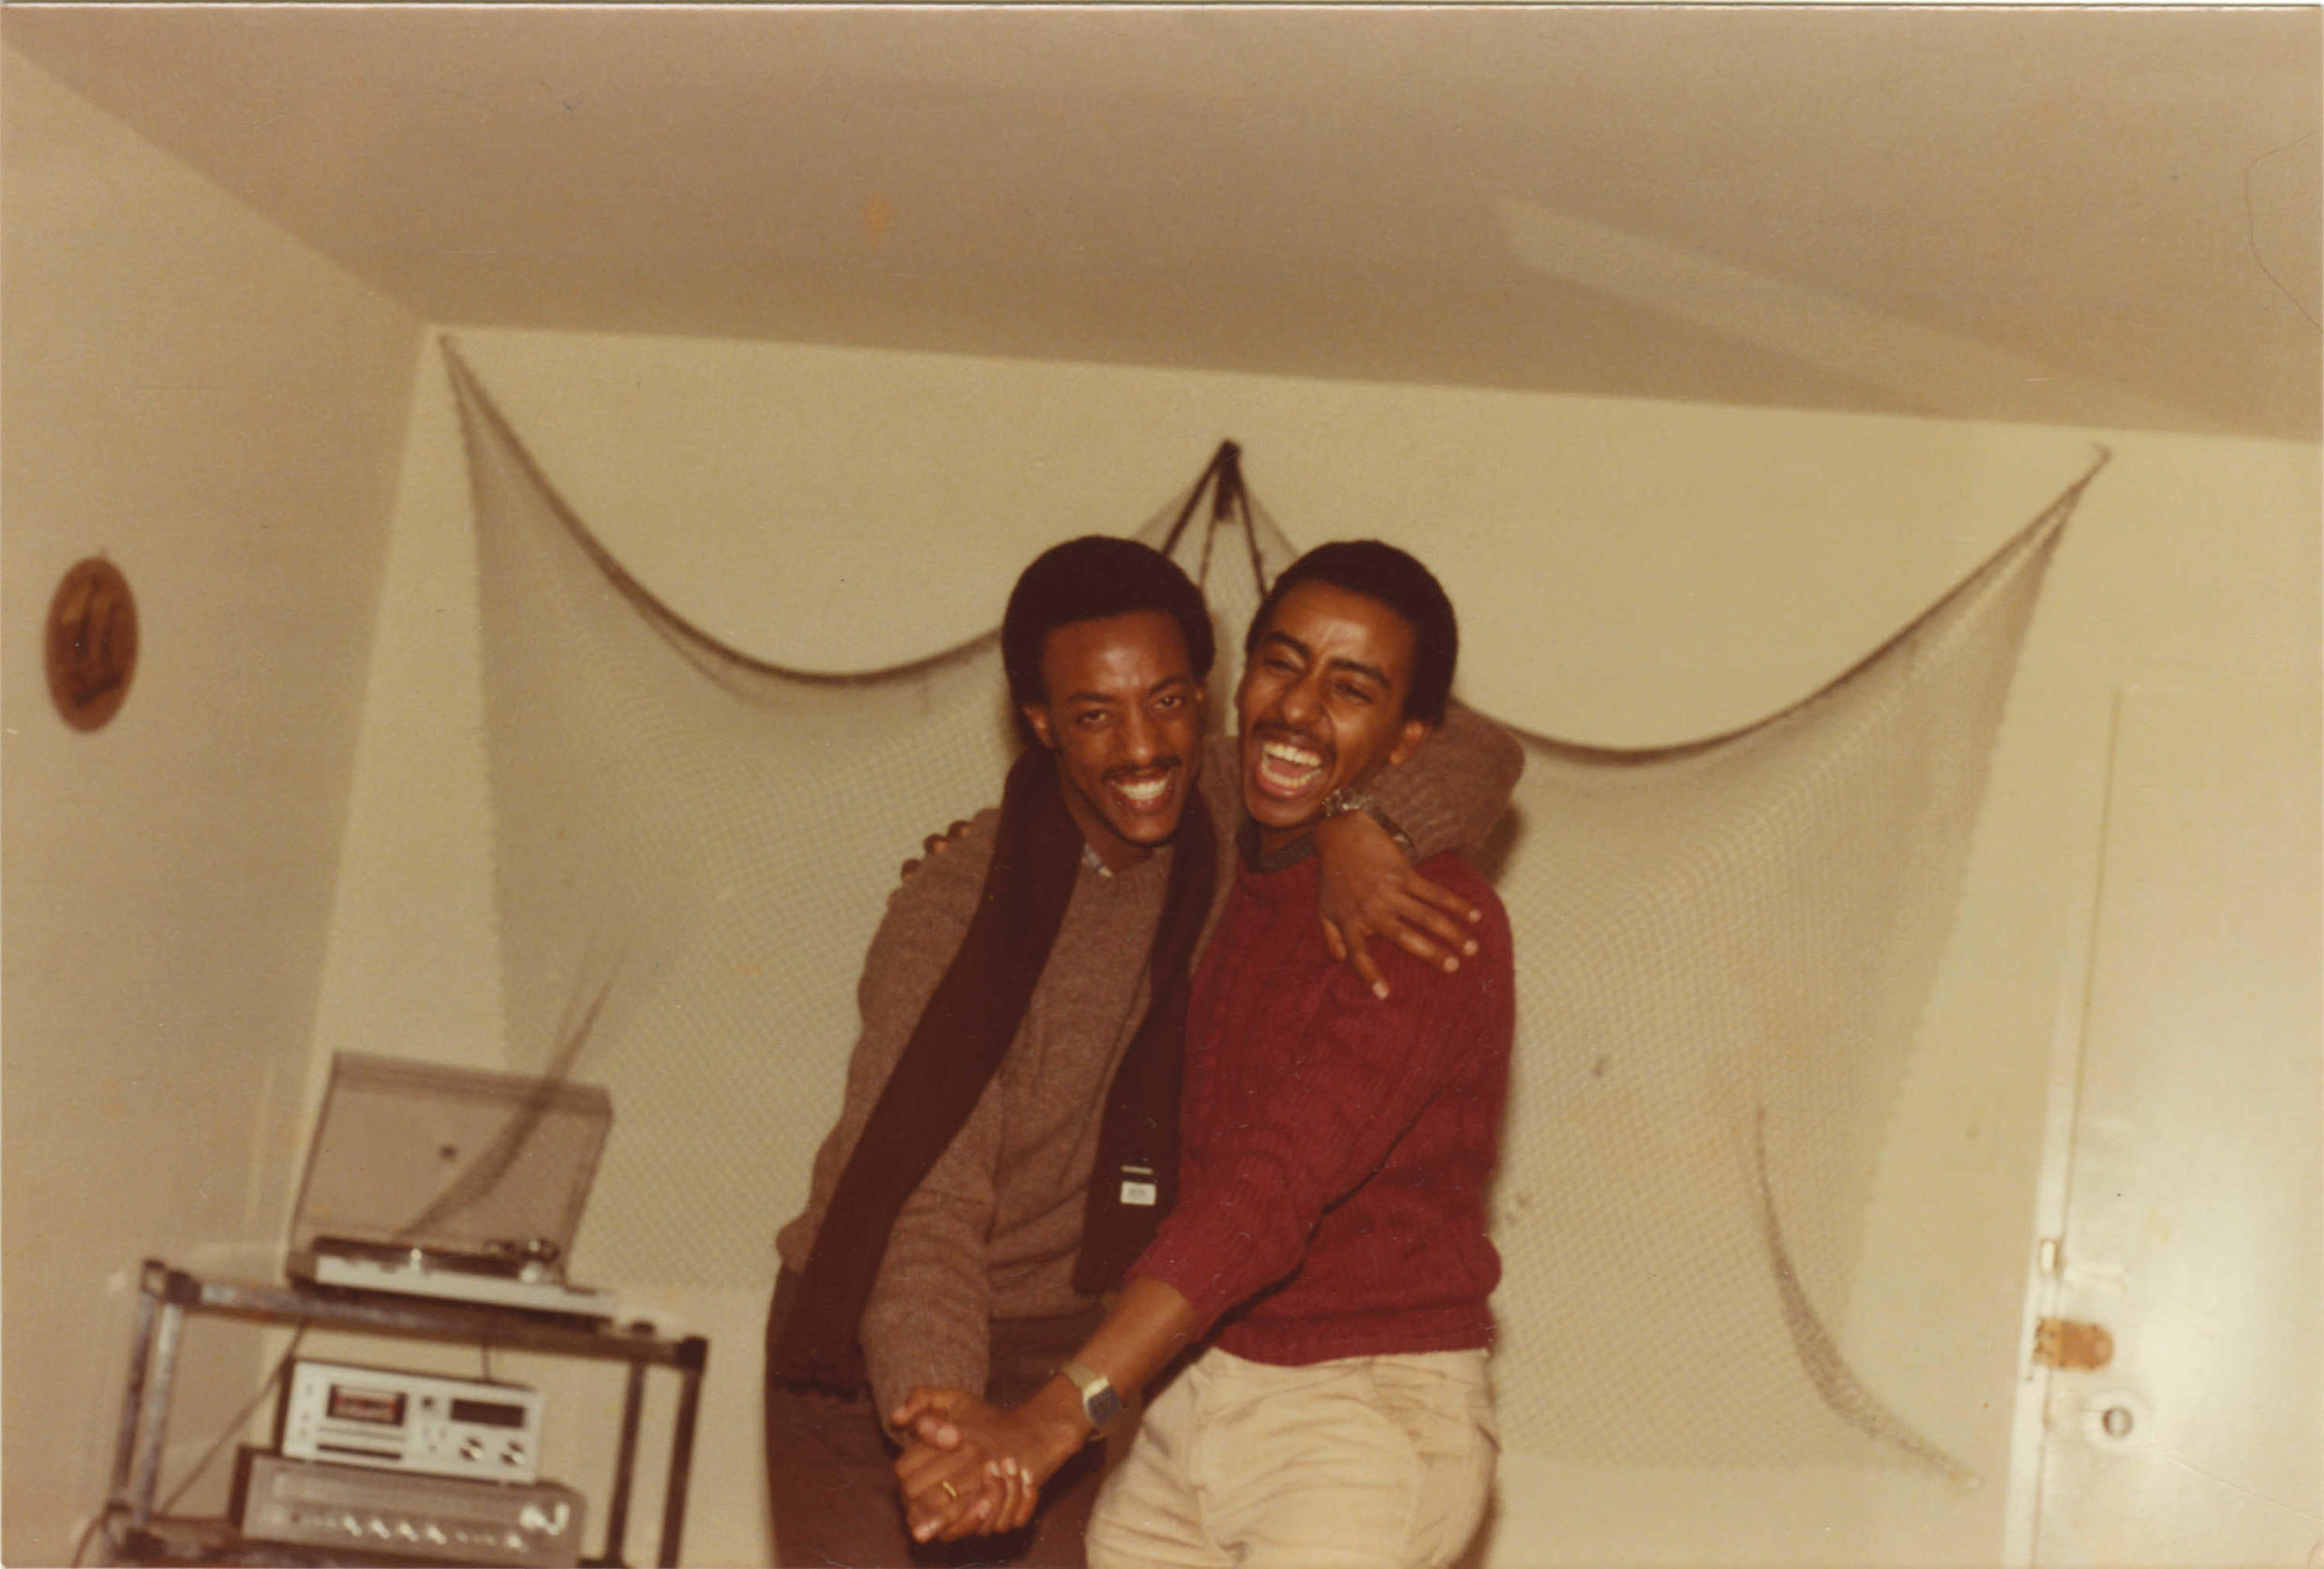 """""""Teddy"""" Tewodros and Hencock became friends at Saint Josephs school in Addis, but strengthened their friendship through making music largely for the Ethiopian diaspora in Washington DC in the 80s."""